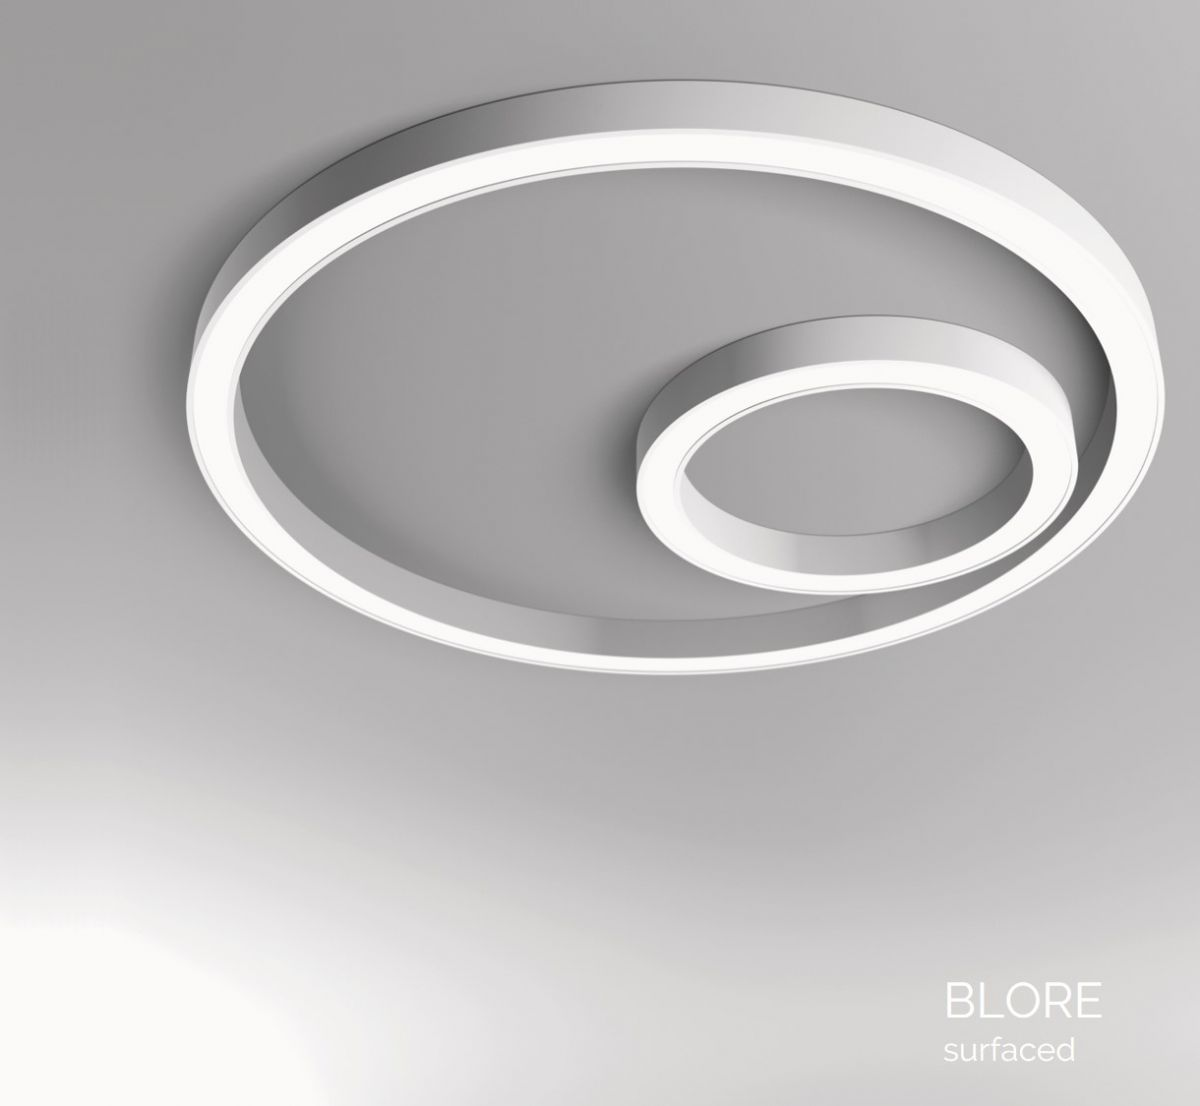 blore 111 opbouw armatuur rond 1500mm 3000k 10630lm 140w dali